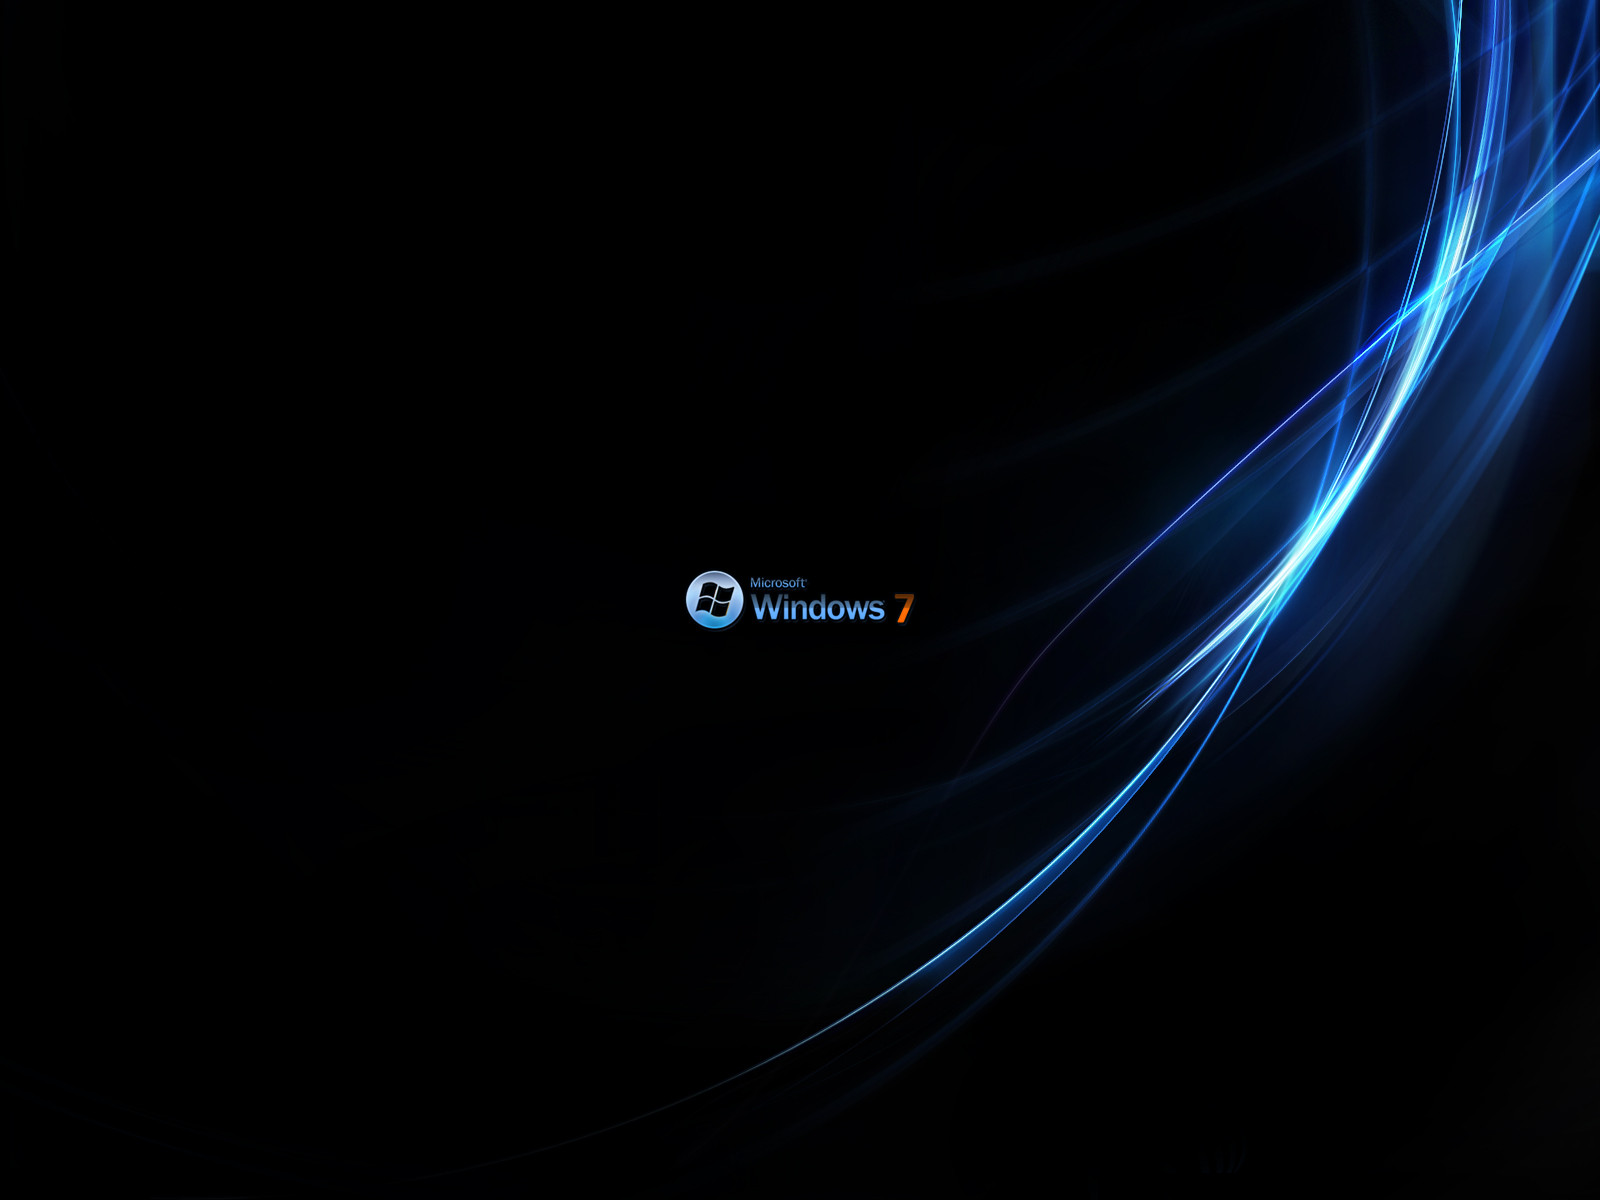 windows 7 wallpaper and background image 1600x1200 id 349974